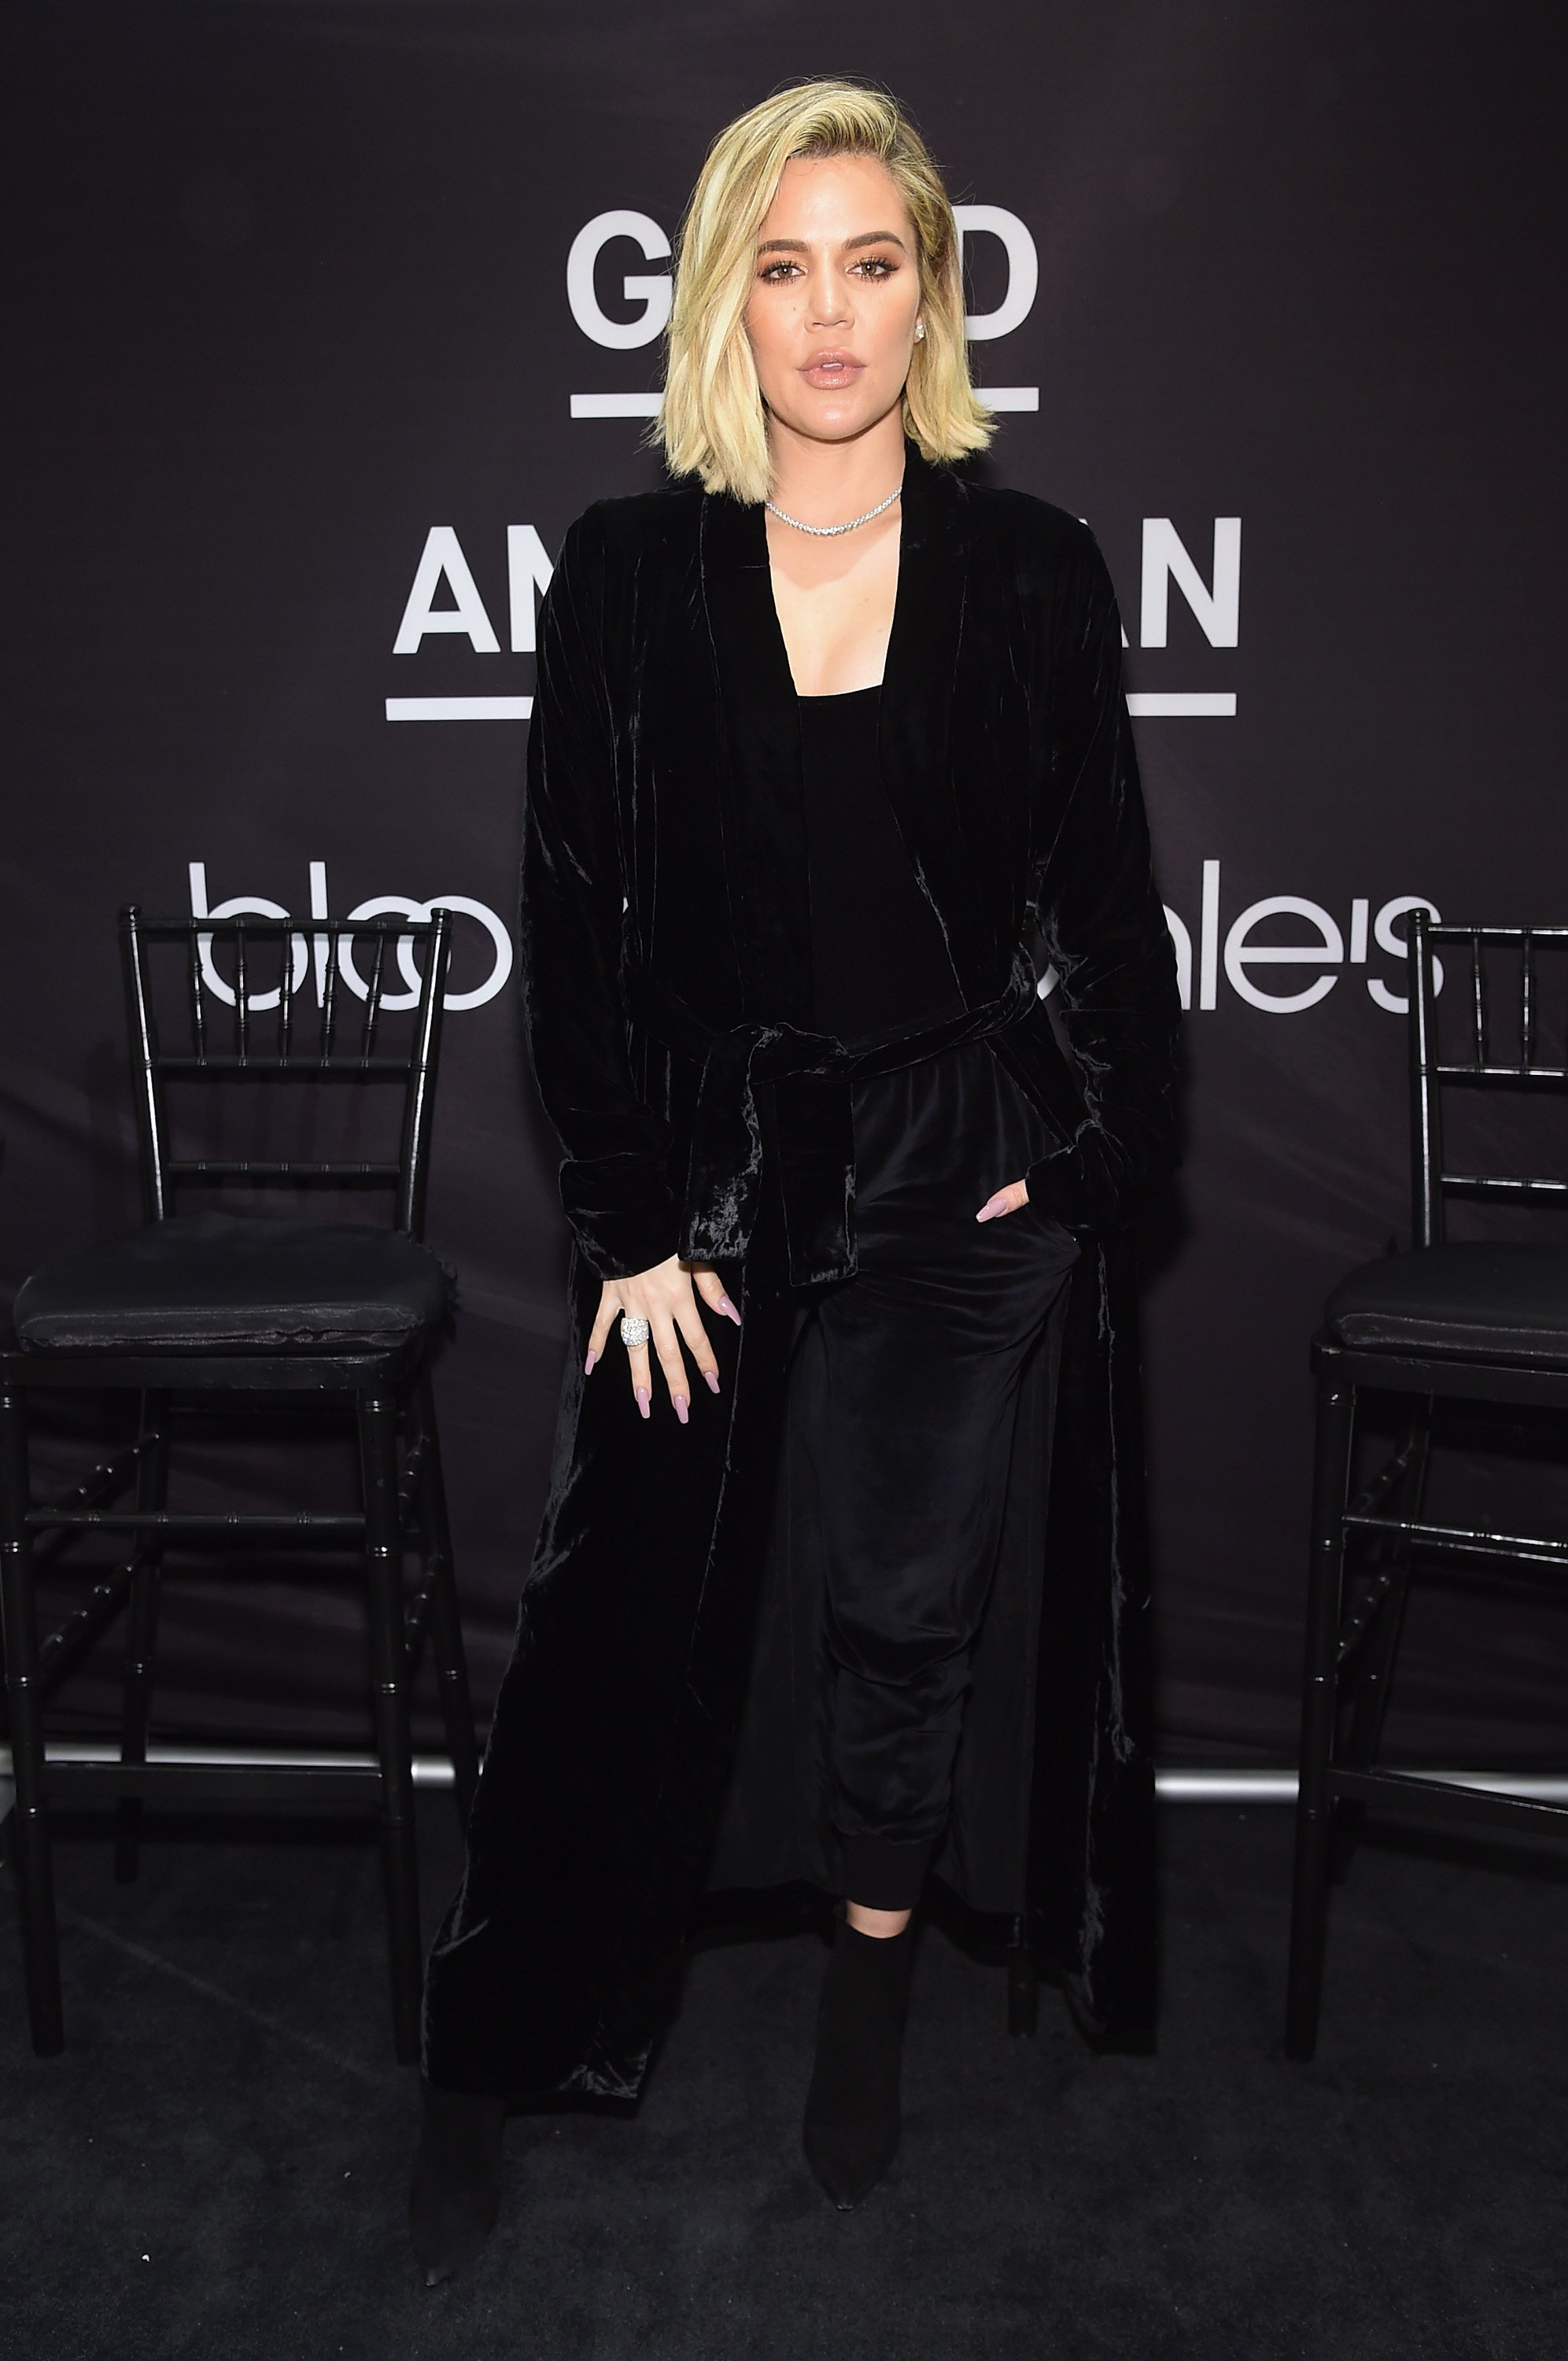 Khloe Kardashian celebrates the launch of Good American with Emma Grede at Bloomingdale's on October 28, 2017 in New York City | Photo: Getty Images